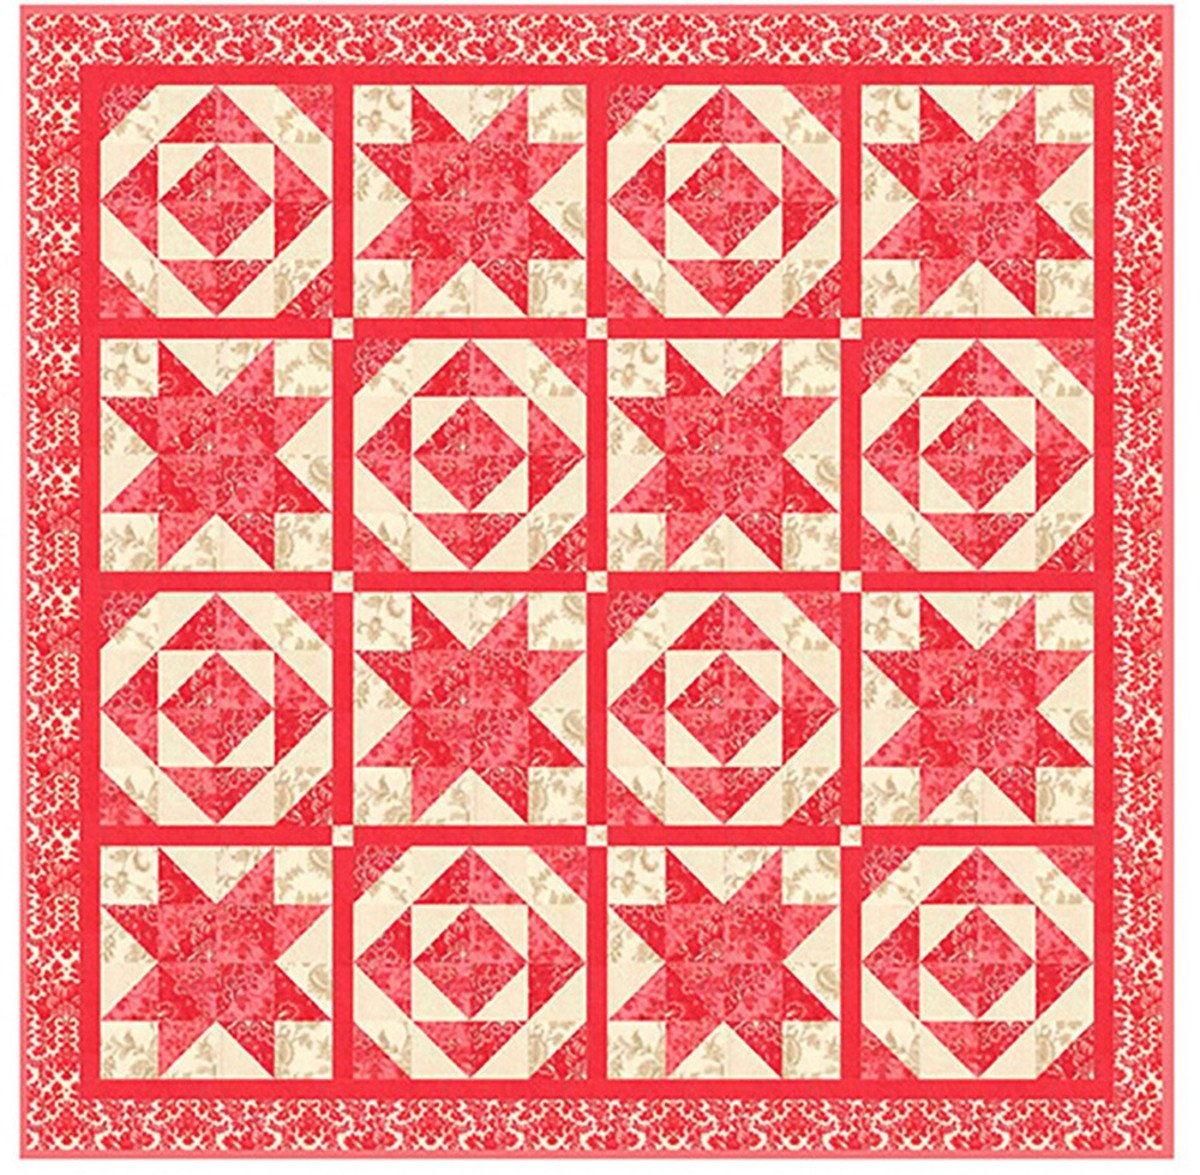 Oh Little Star Quilt Kit with Cinniberry by 3 Sisters for Moda